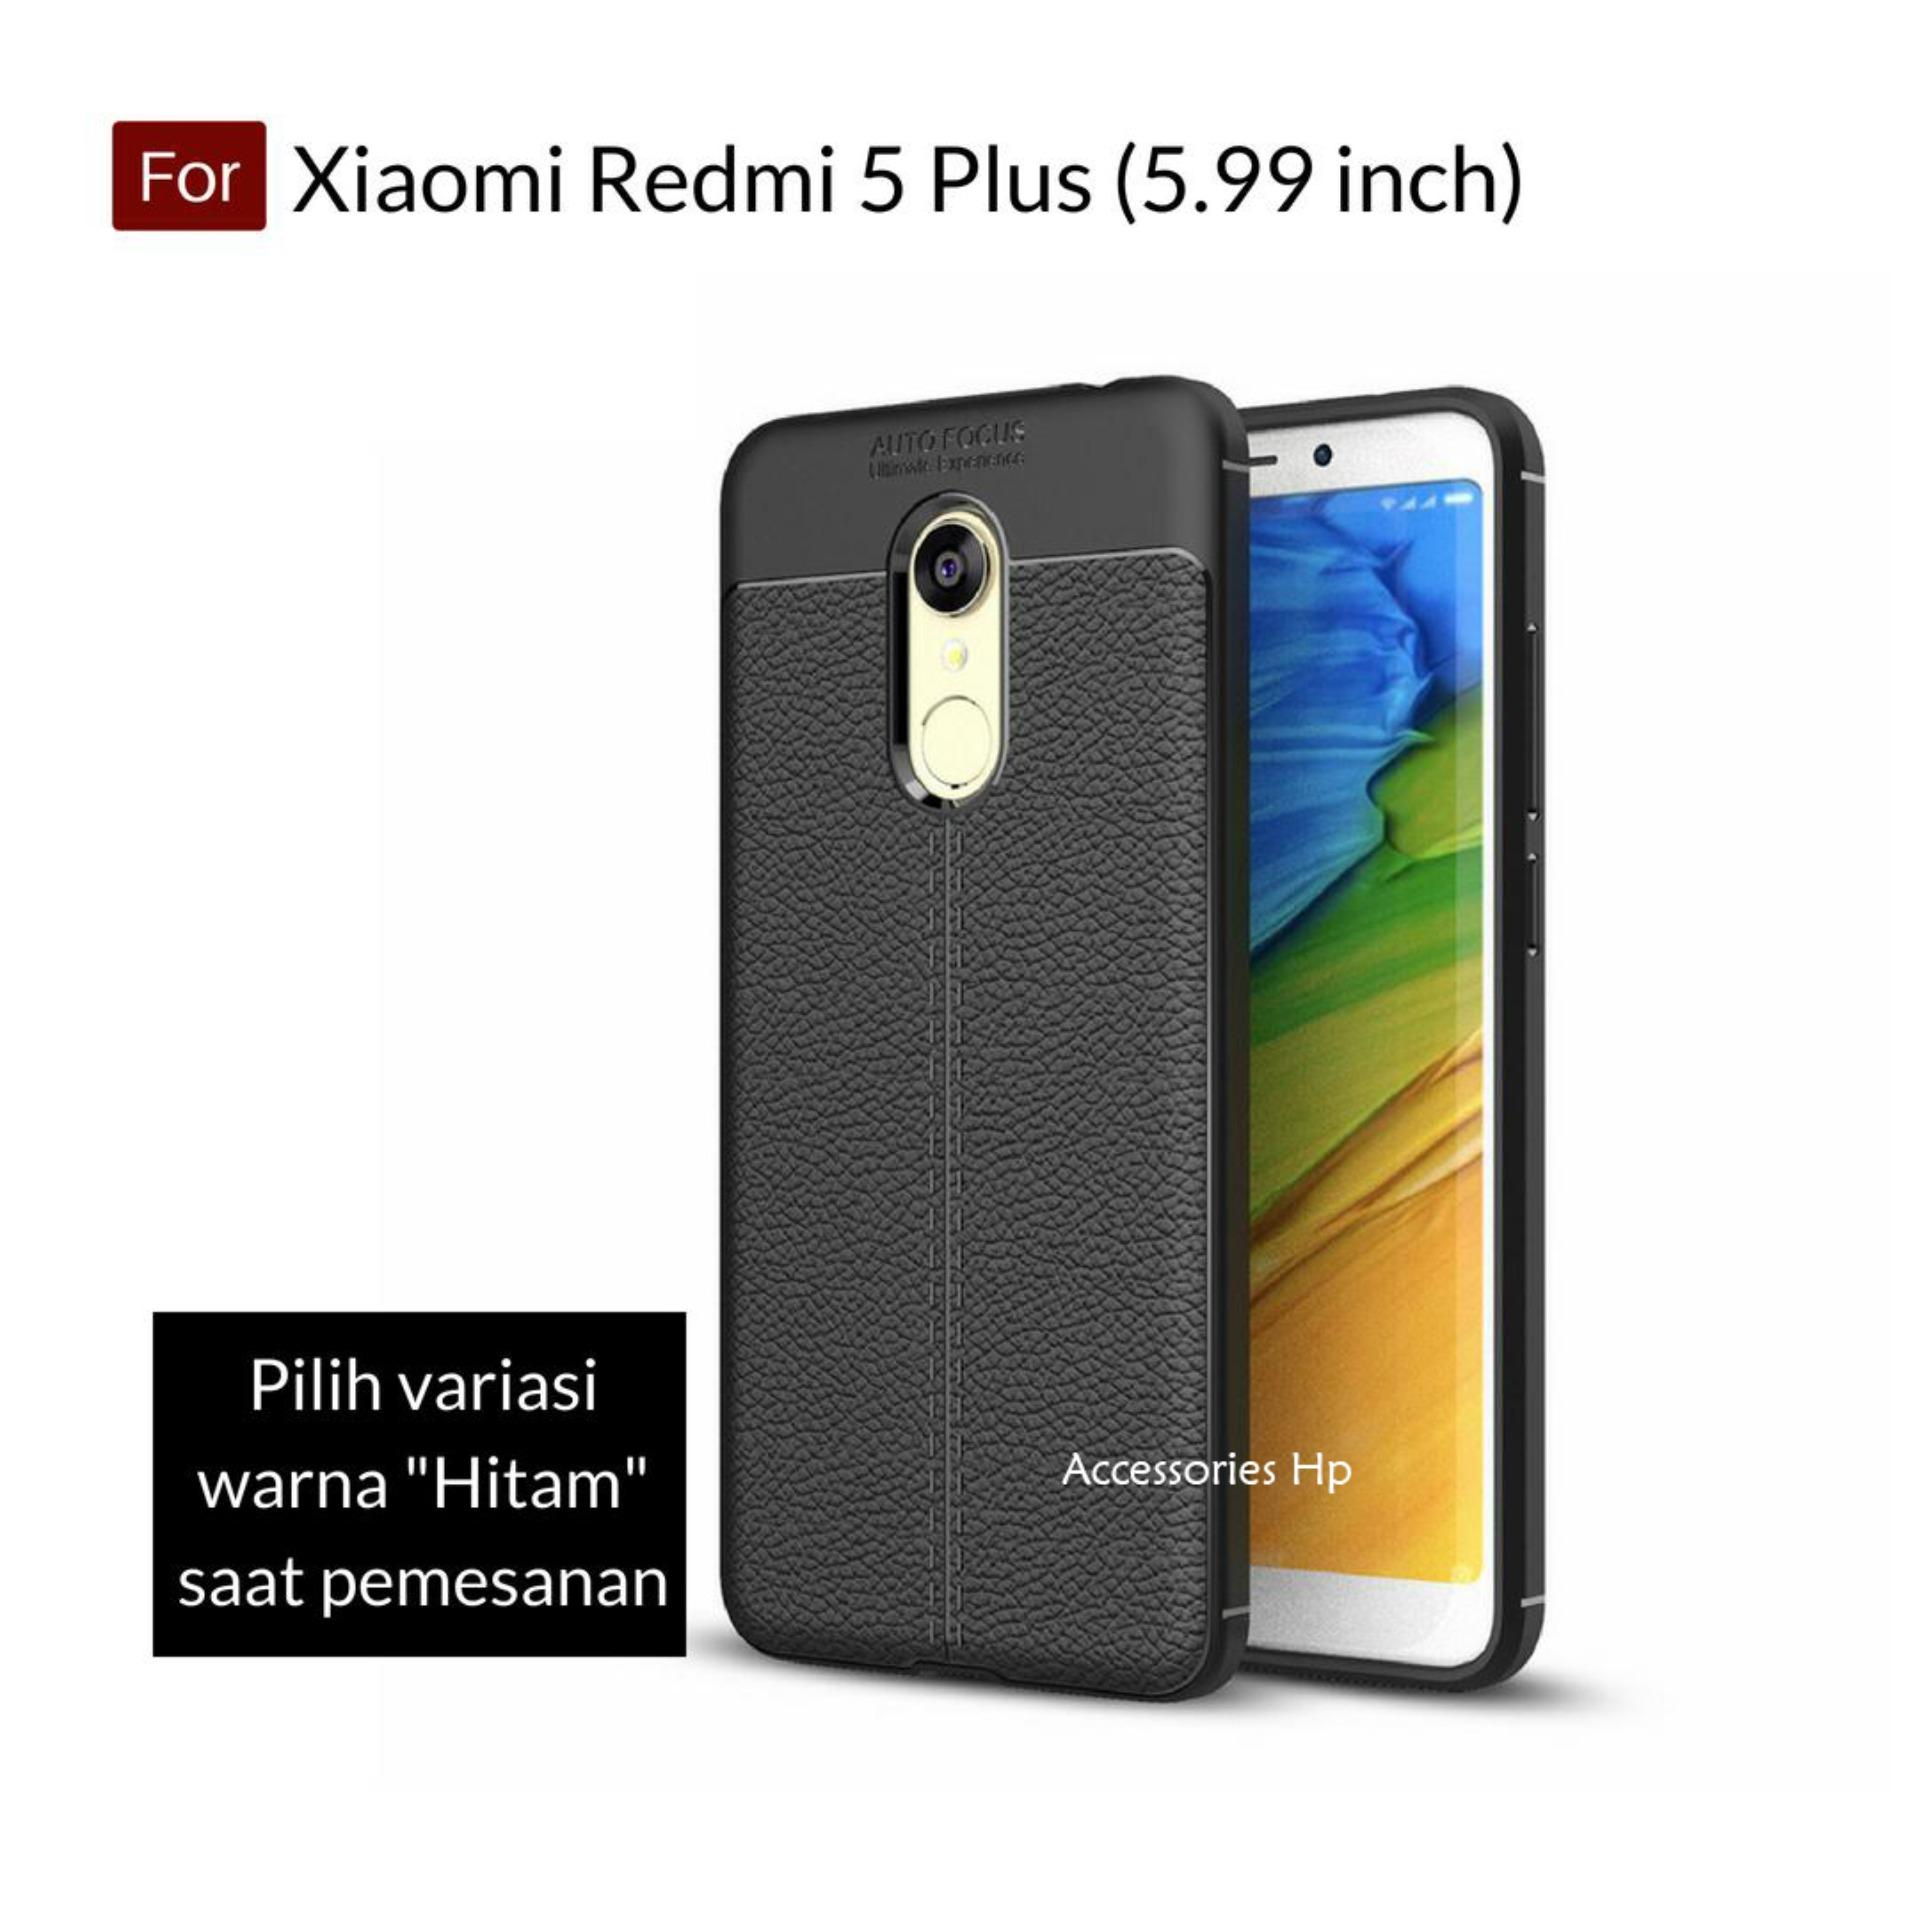 Accessories Hp Premium Ultimate Shockproof Leather Case For Xiaomi Redmi 5 Plus Layar 5.99 inch -